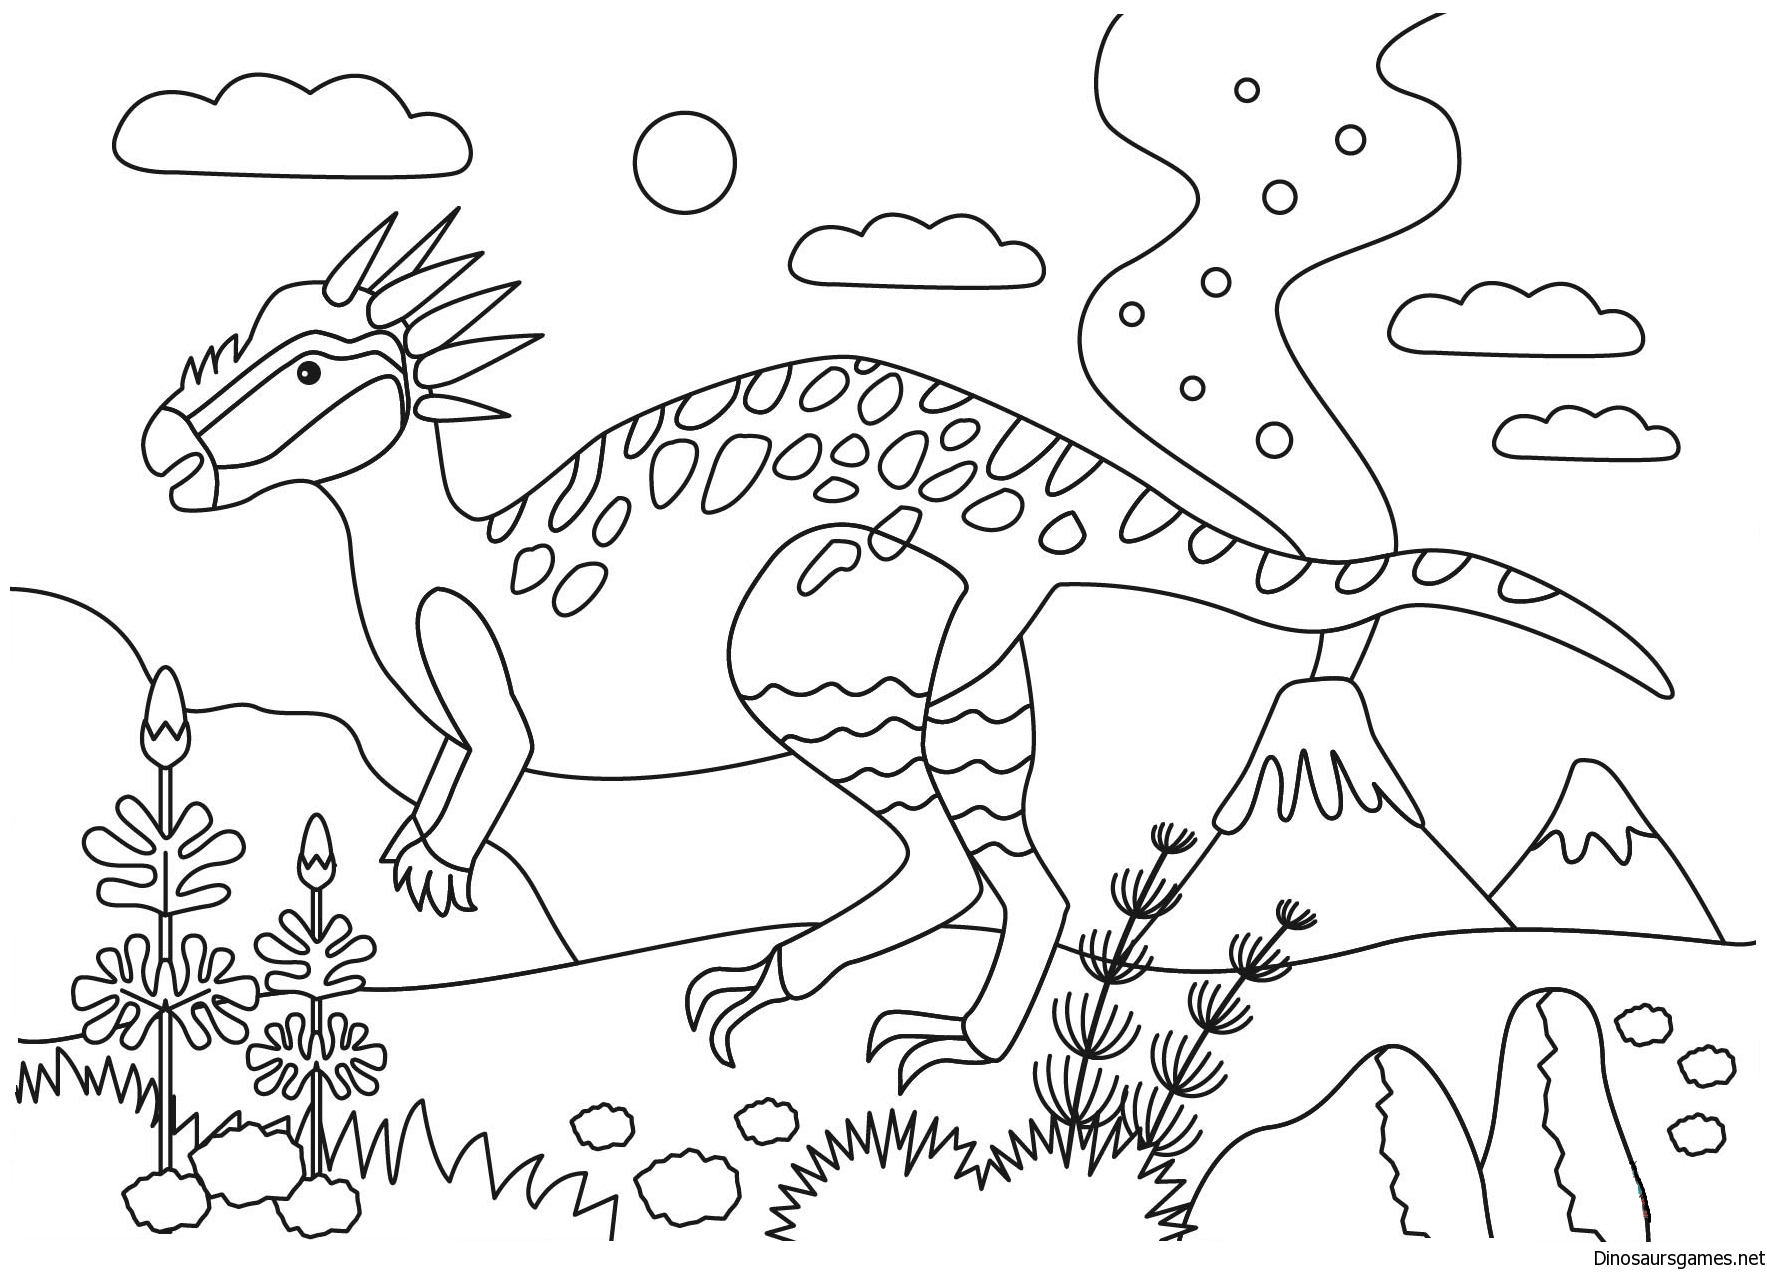 Stygimoloch Dinosaur Coloring Pages